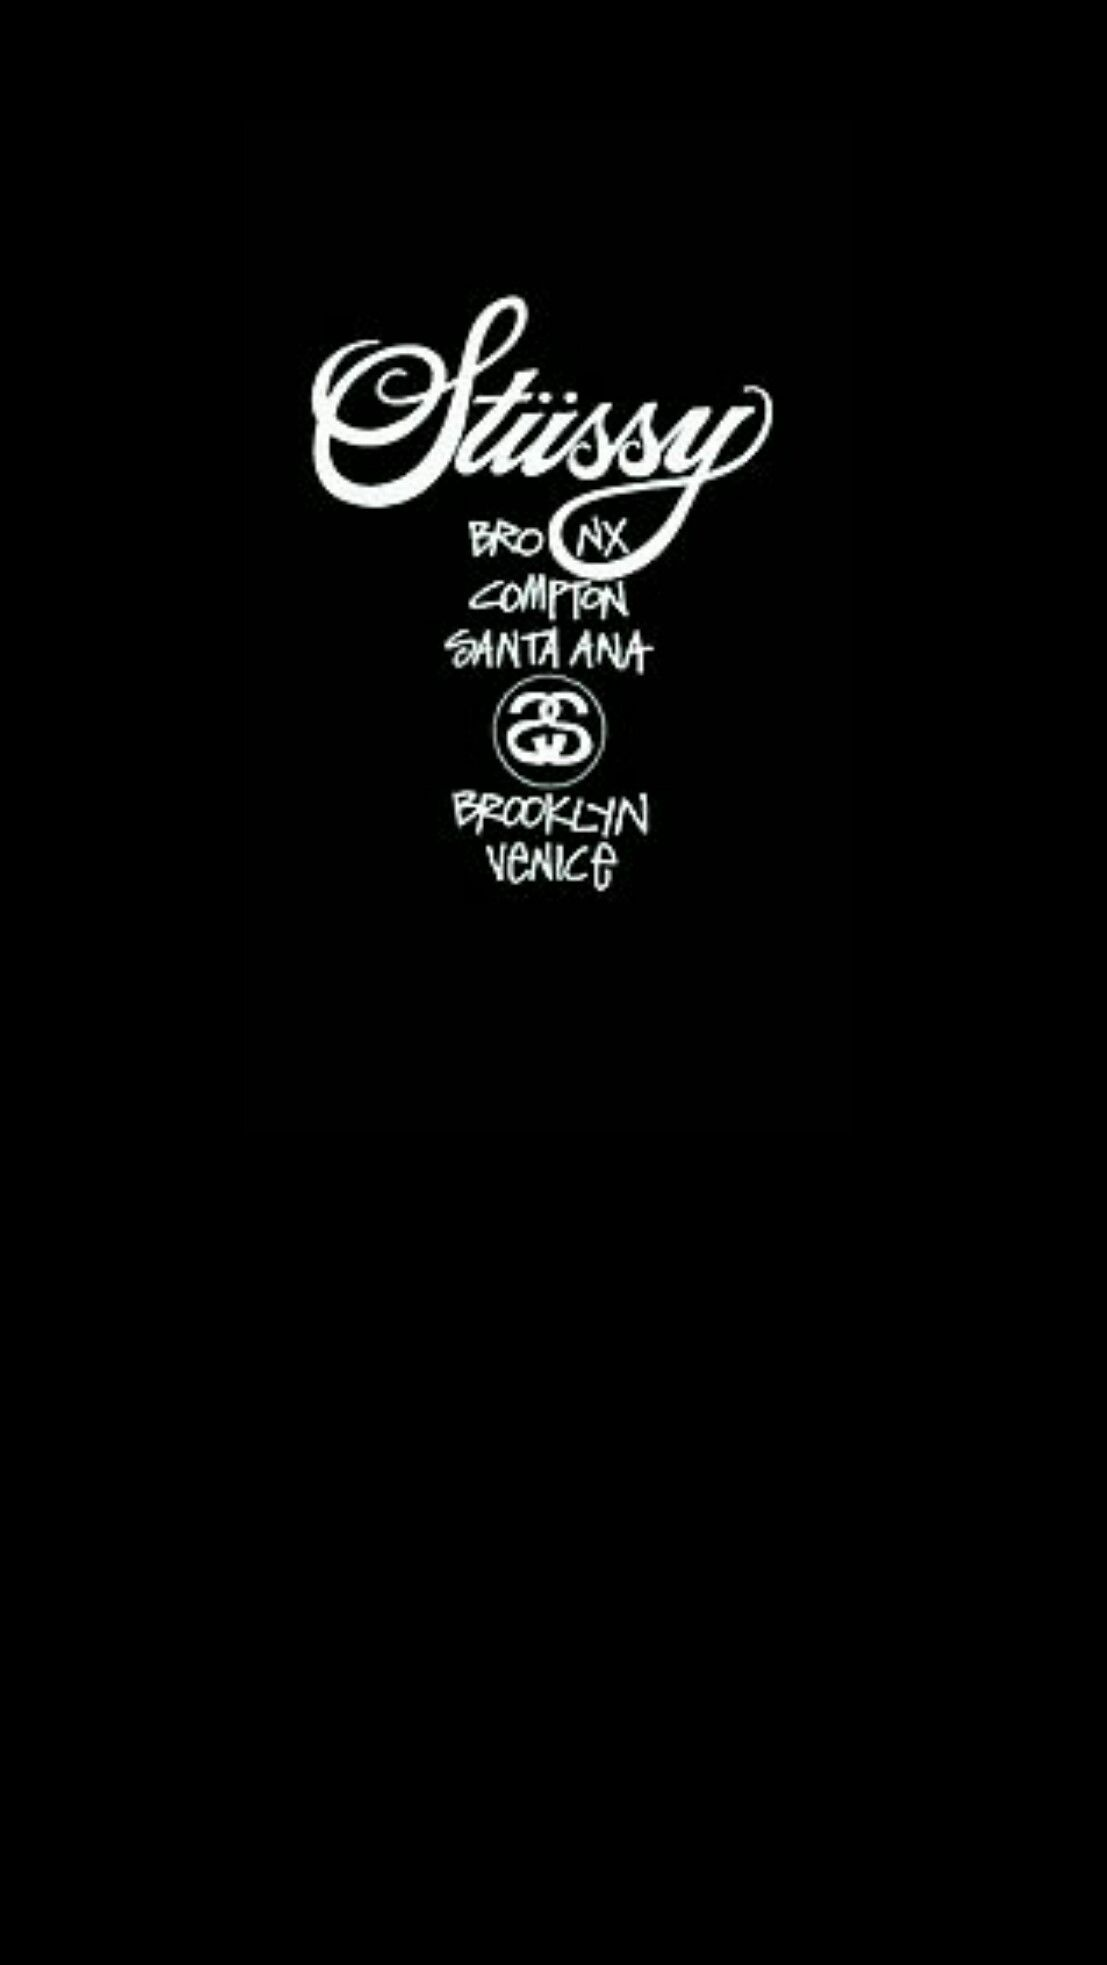 Stussy Black Wallpaper Android Iphone Achtergronden